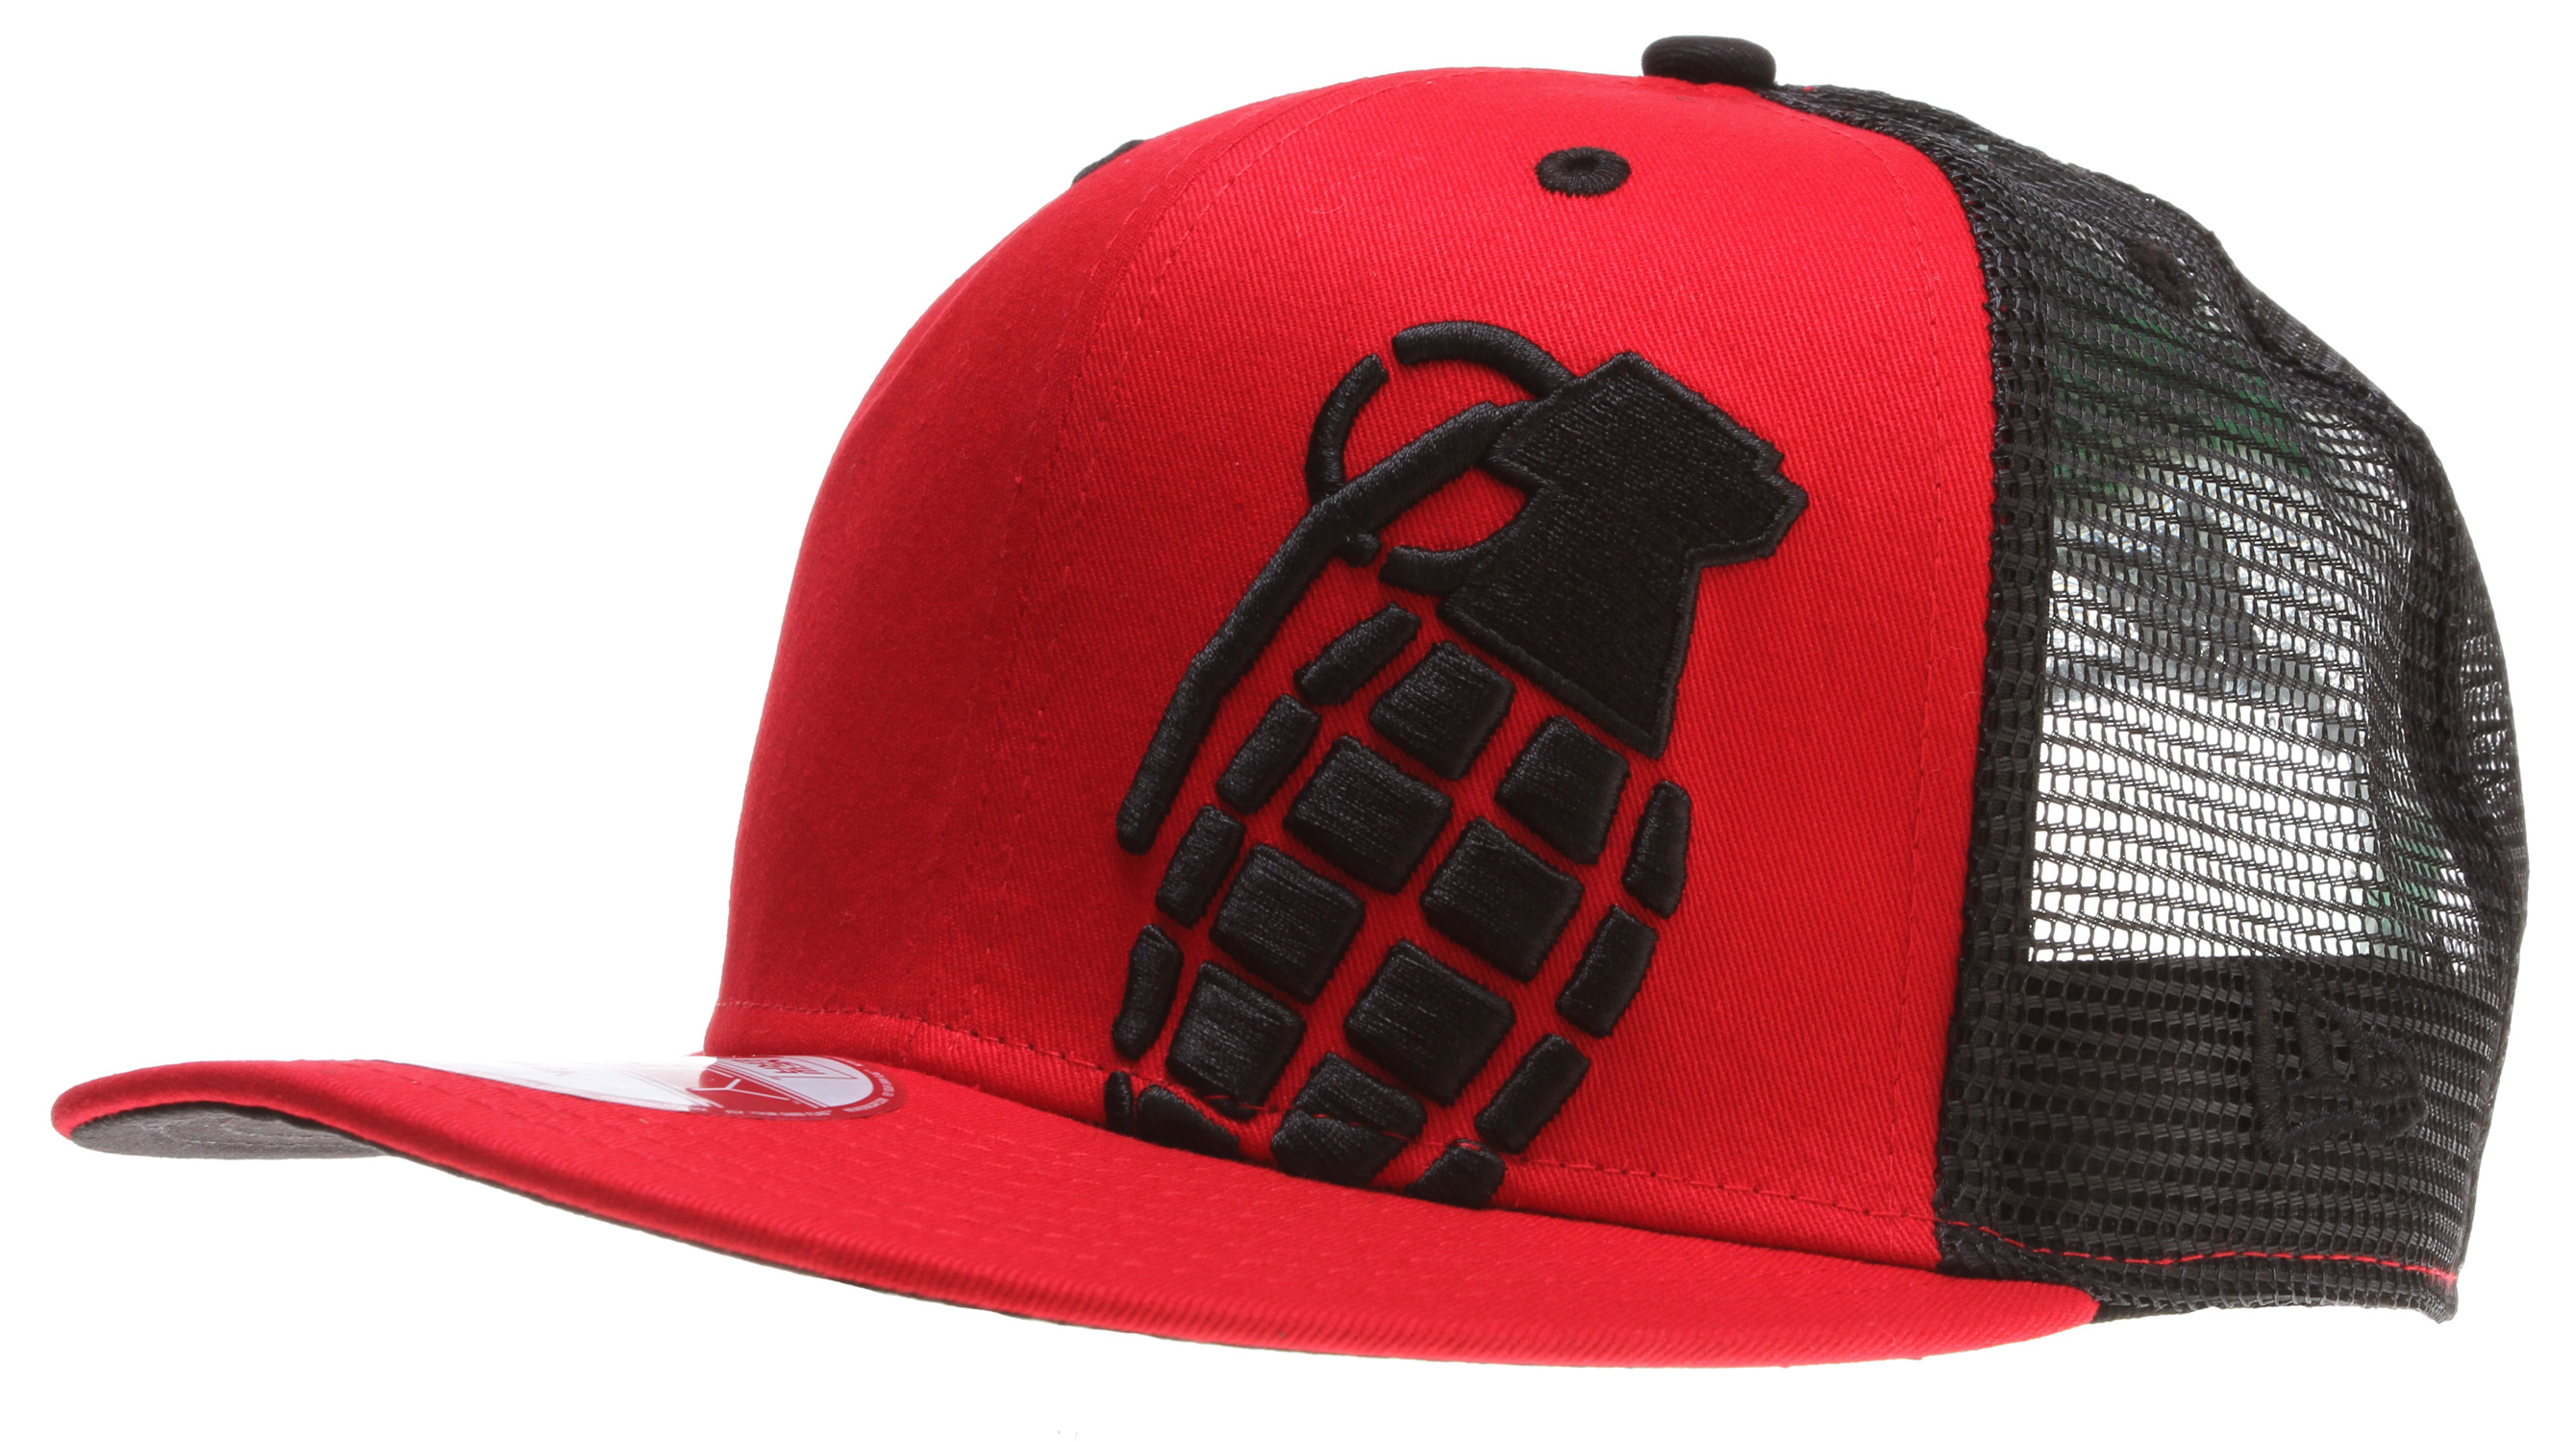 Key Features of the Grenade Halfer Mesh Cap: 100% cotton New Era Mesh Snap Back Embroidered logo - $24.95